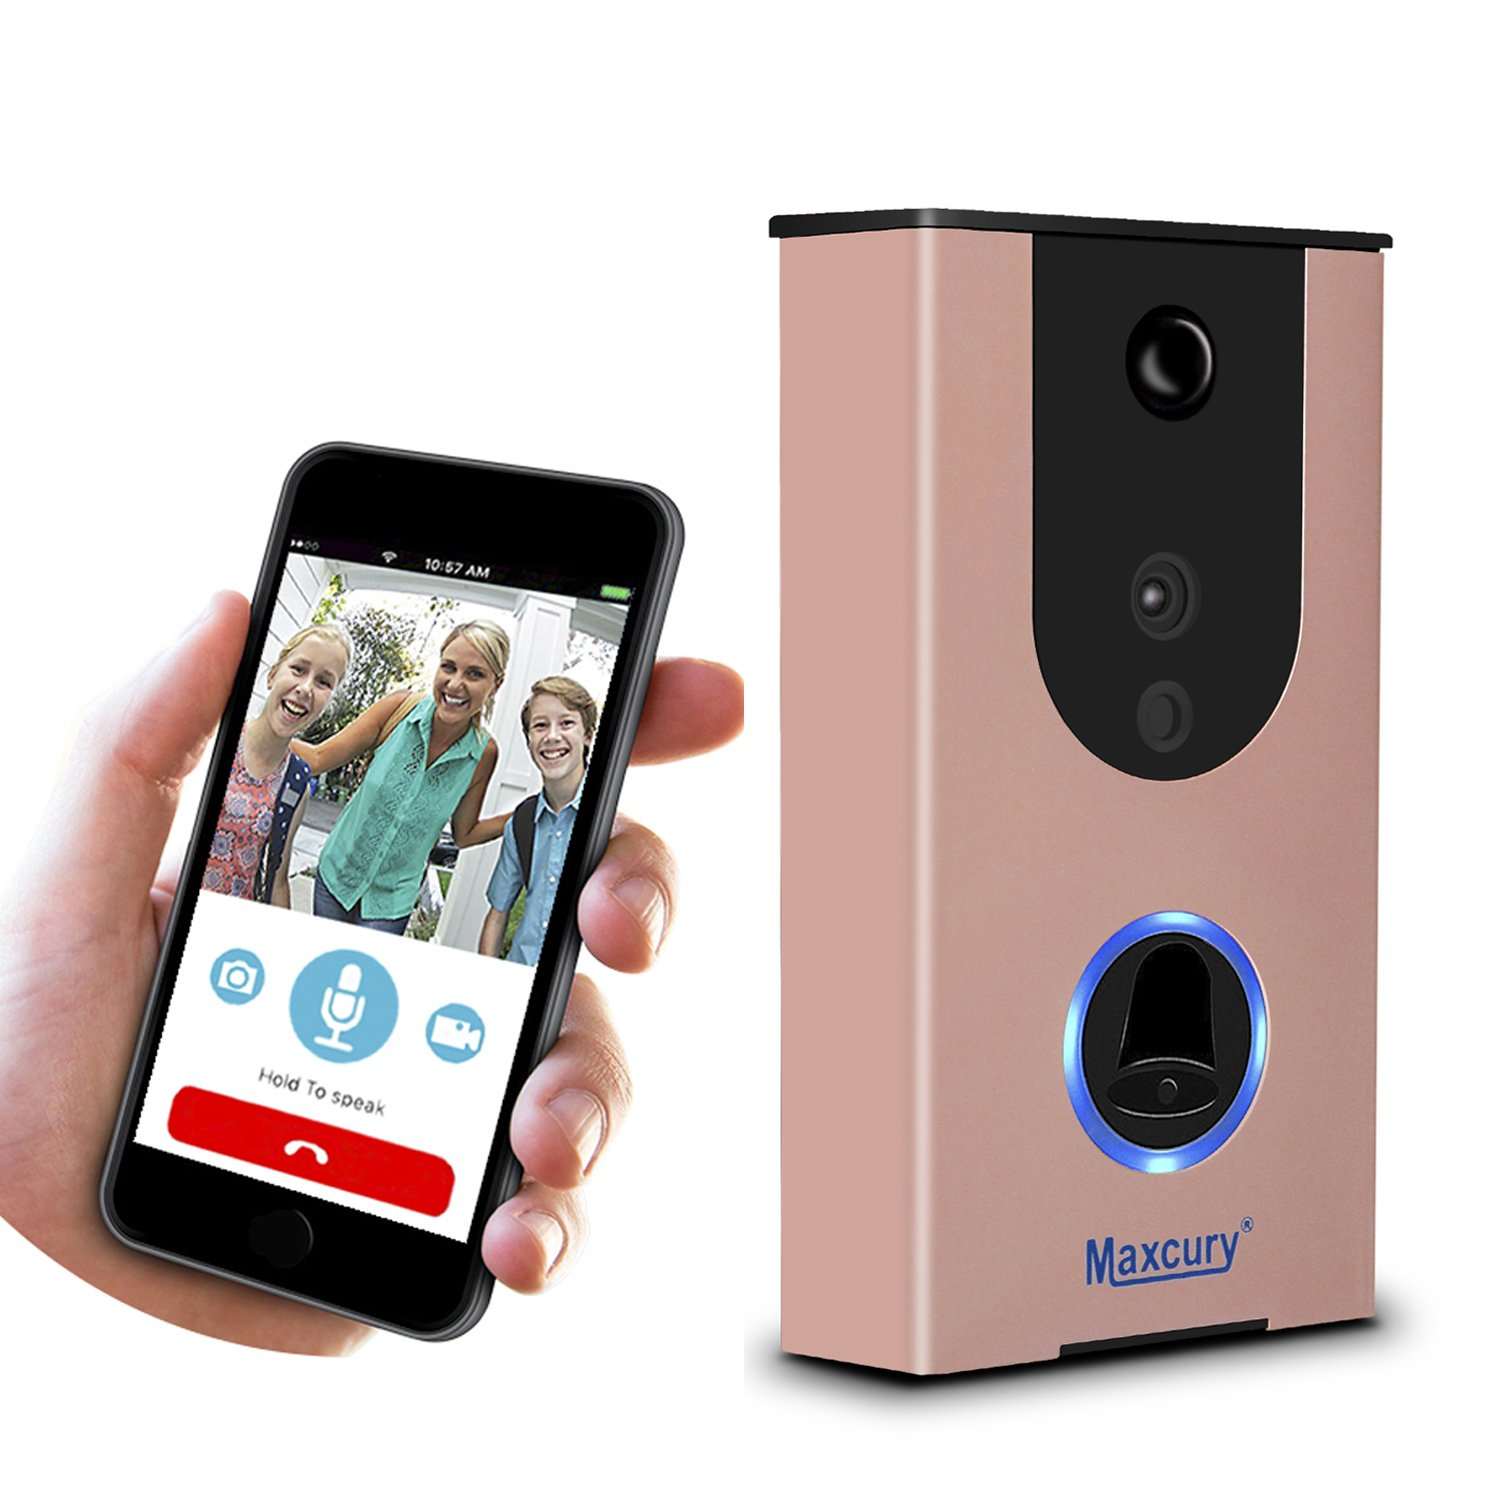 Door Viewer Smart Wi-Fi Video Doorbell in Rose Gold Waterproof IP65, iOS & Android APP, IR Night Vision, Cloud Storage, Support Tamper Alarm [CE FCC RoHS]Certification